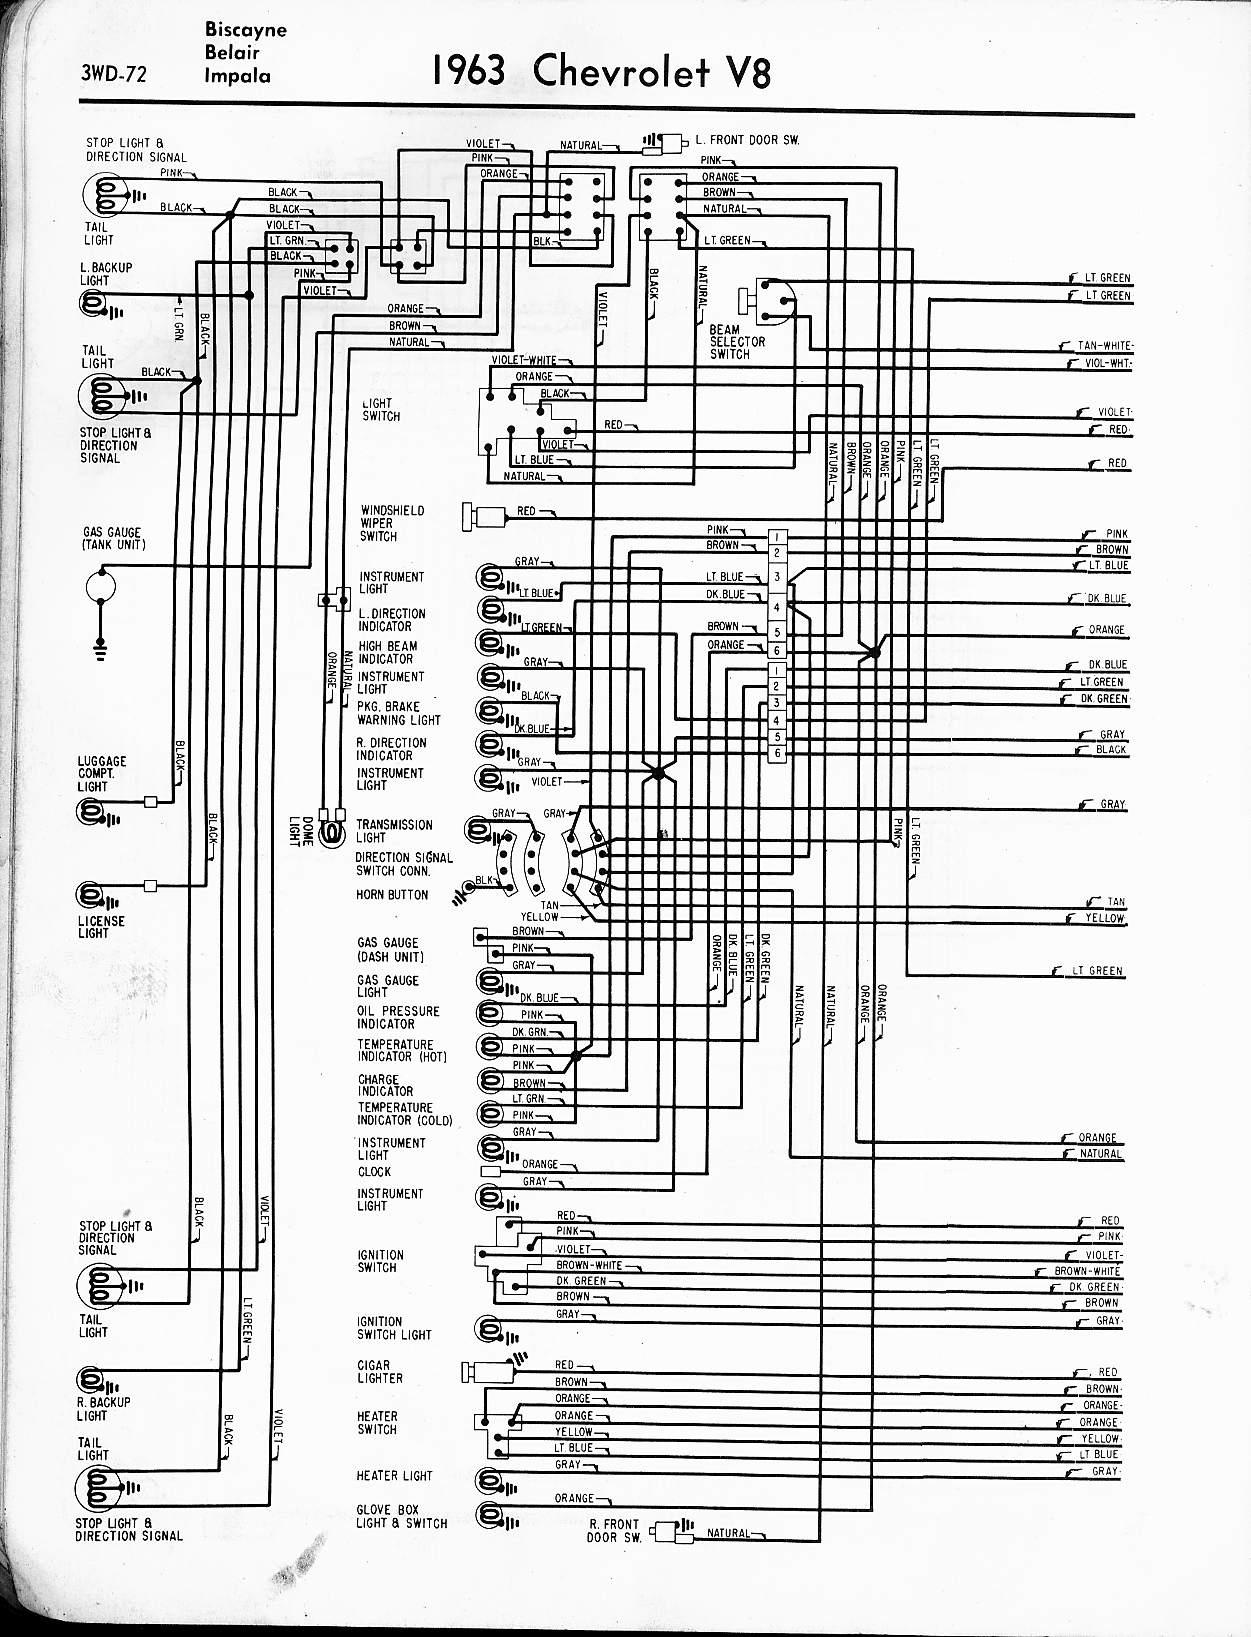 05 Chevy Impala Ignition Switch Wiring Diagram - Wiring Diagram idea  theory-assembly - theory-assembly.formenton8file.it | 2005 Impala Engine Wiring Harness Diagram |  | - Formenton 8 file